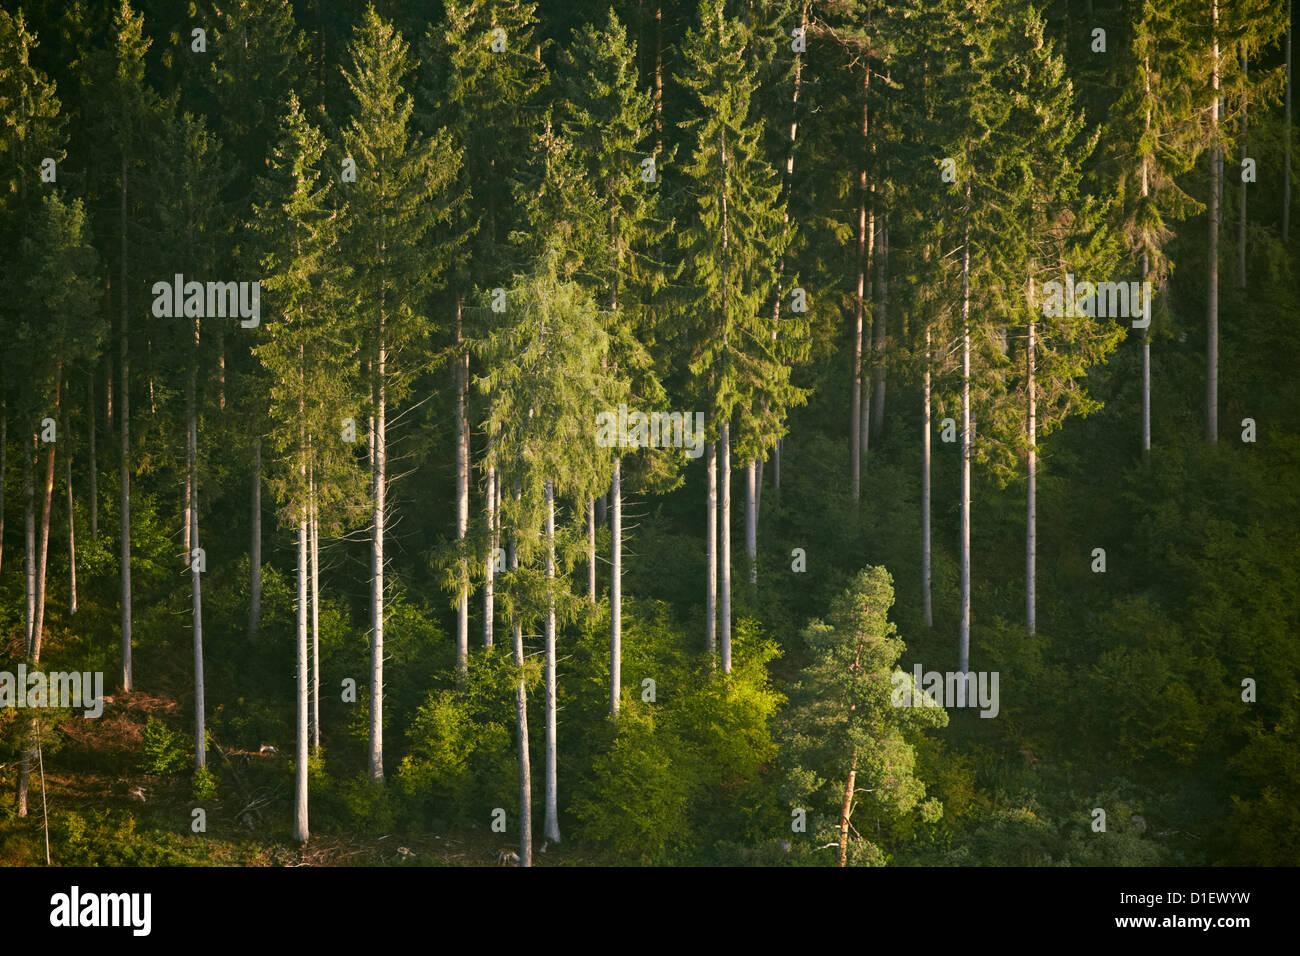 Conifer forest near Sigmaringen, Baden-Wuerttemberg, Germany, aerial photo Stock Photo